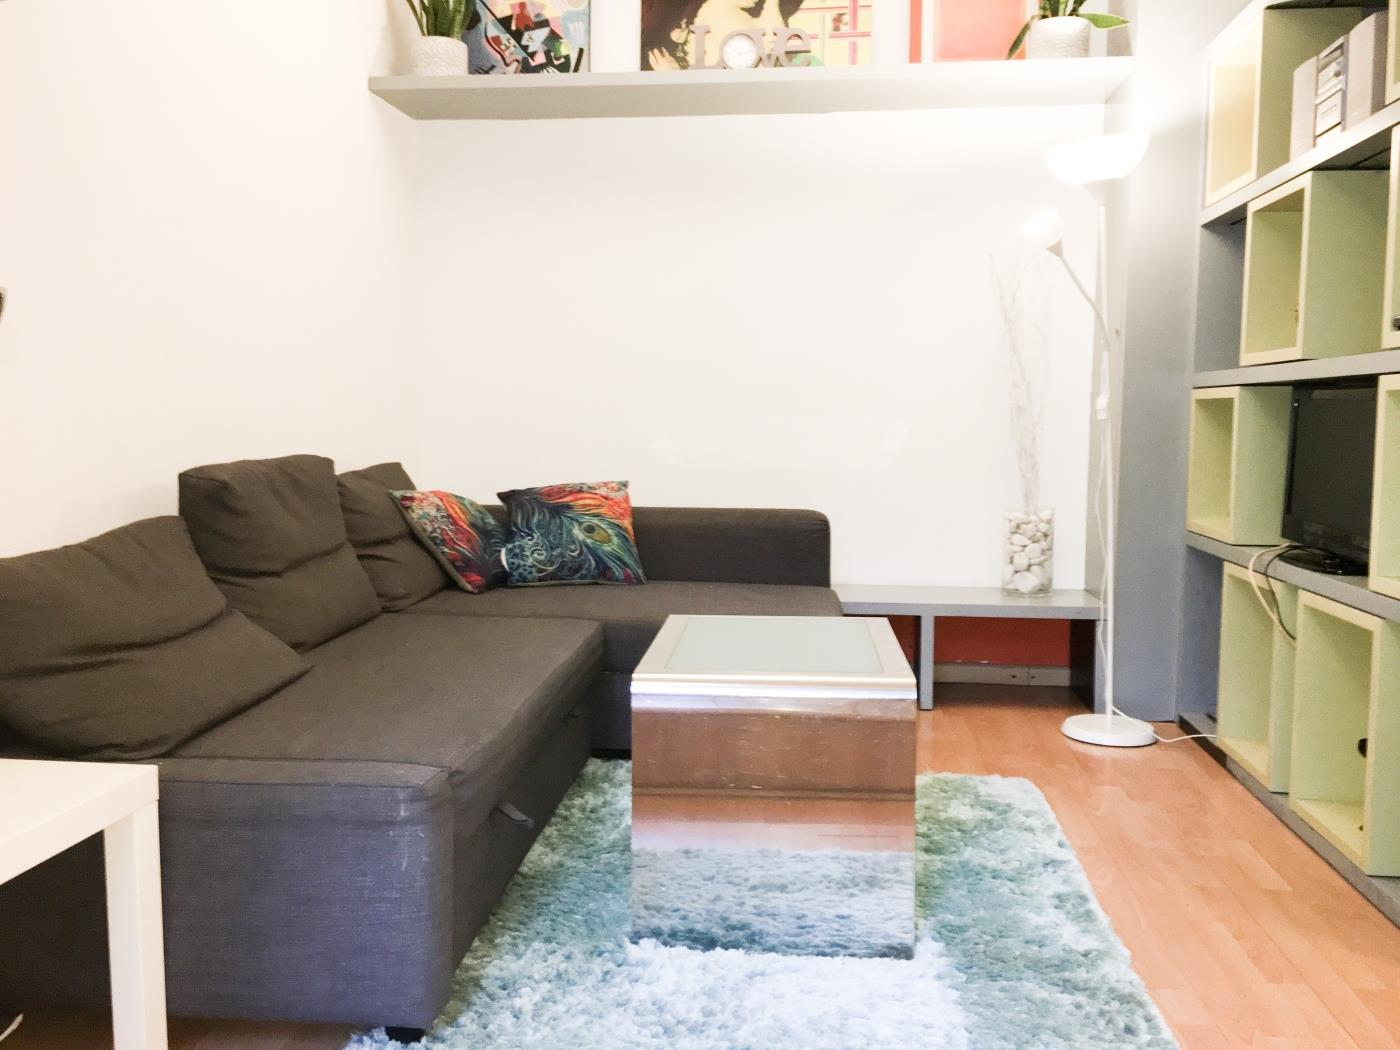 Duplex avec le meilleur emplacement et parking optionnel dans le centre de Gràci - My Space Barcelona Appartements